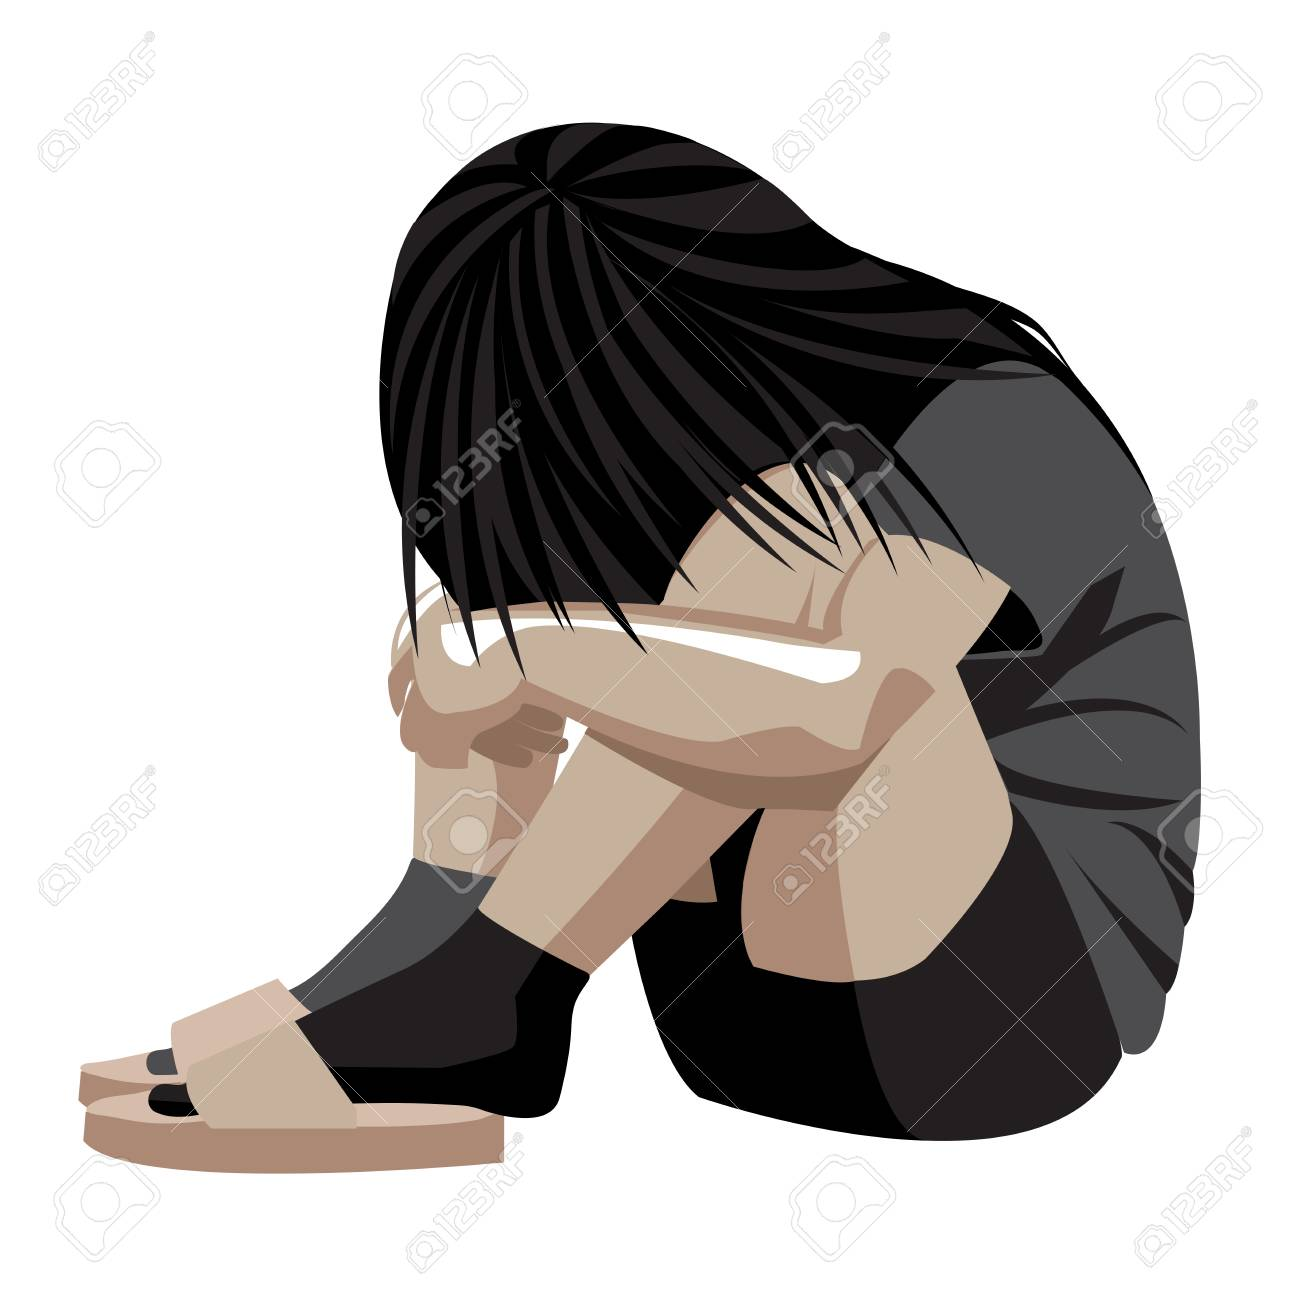 Free Boy Crying Cliparts, Download Free Clip Art, Free Clip Art on Clipart  Library